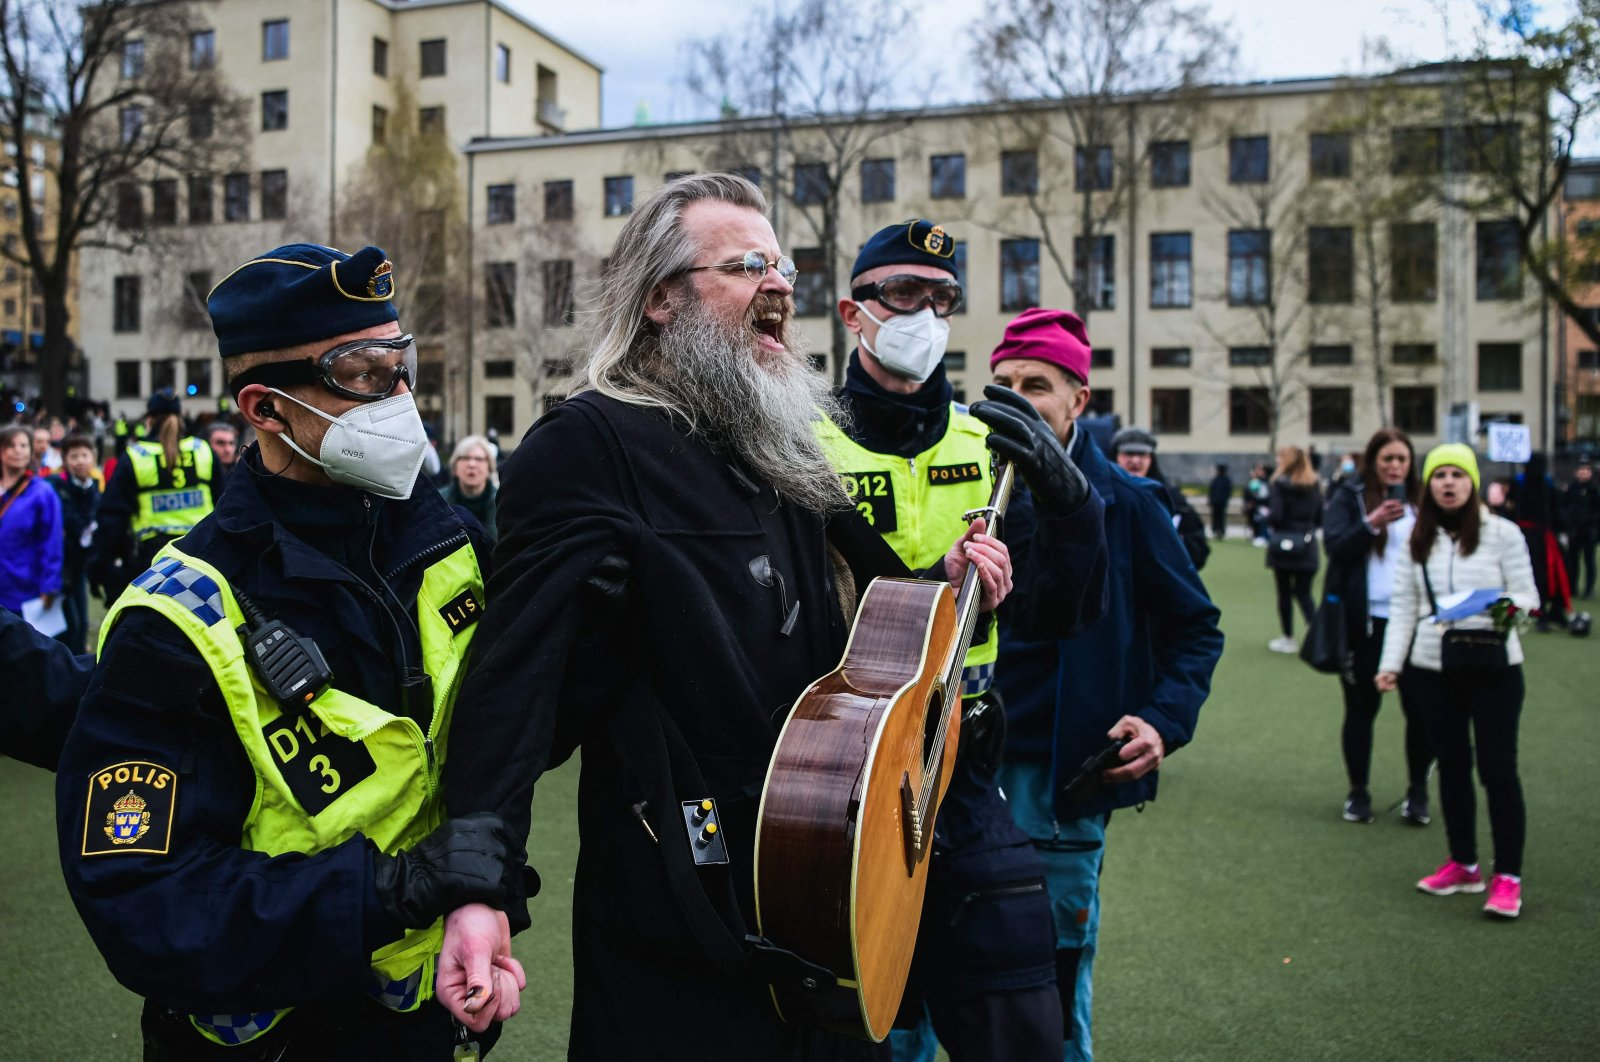 Police officers remove people as they gather to protest against the country's COVID-19 restrictions in central Stockholm, Sweden, May 1, 2021. (AFP Photo)